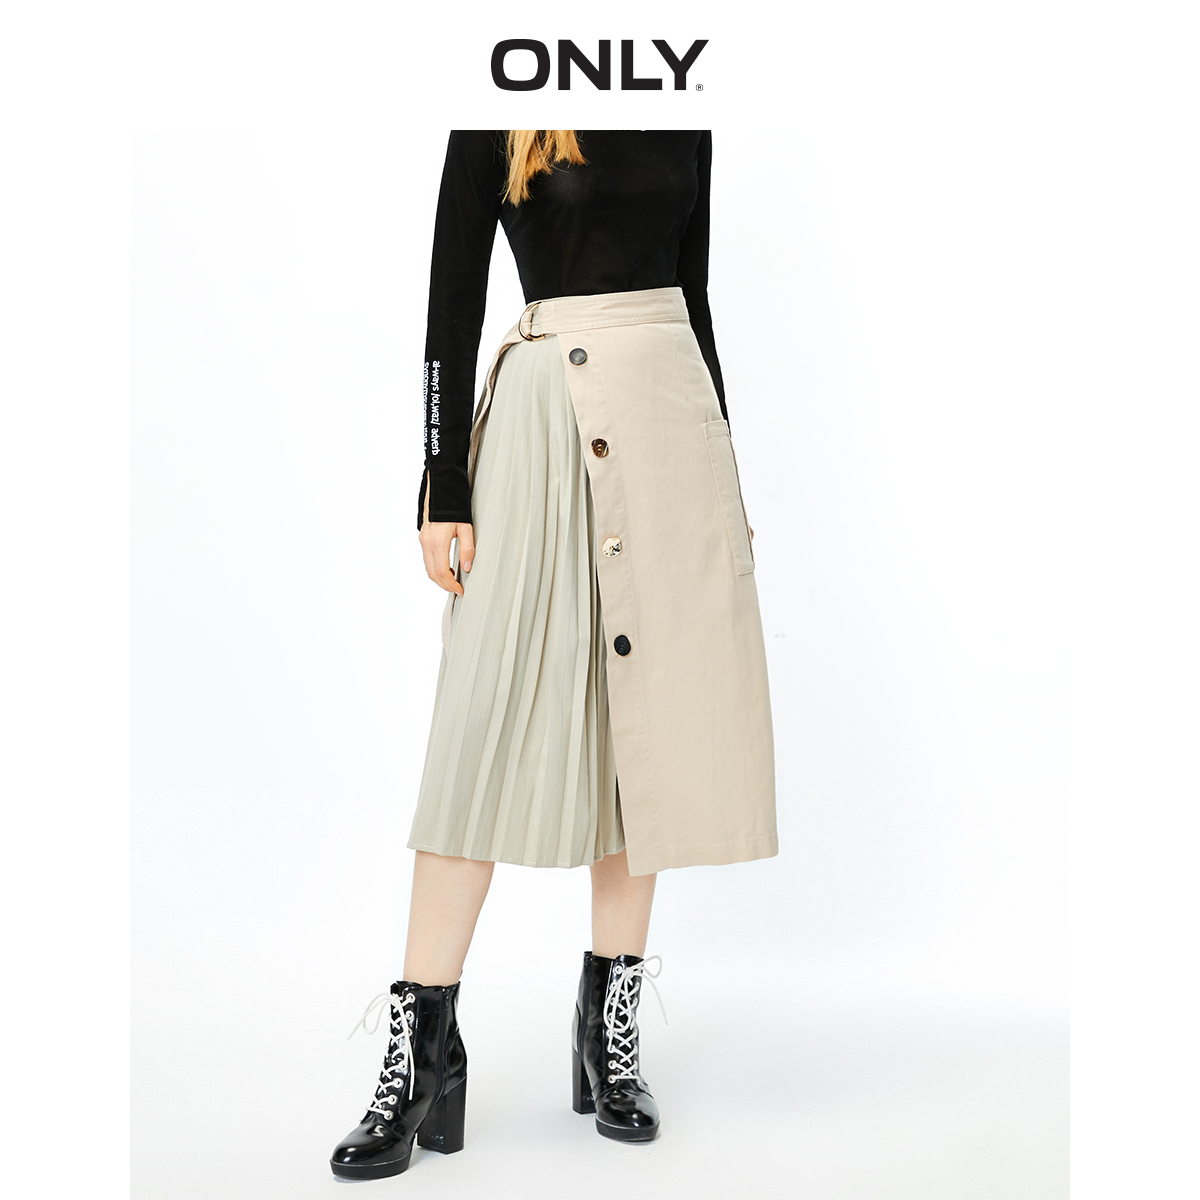 ONLY Women's Striped Pleated Spliced A-line Skirt | 120137507